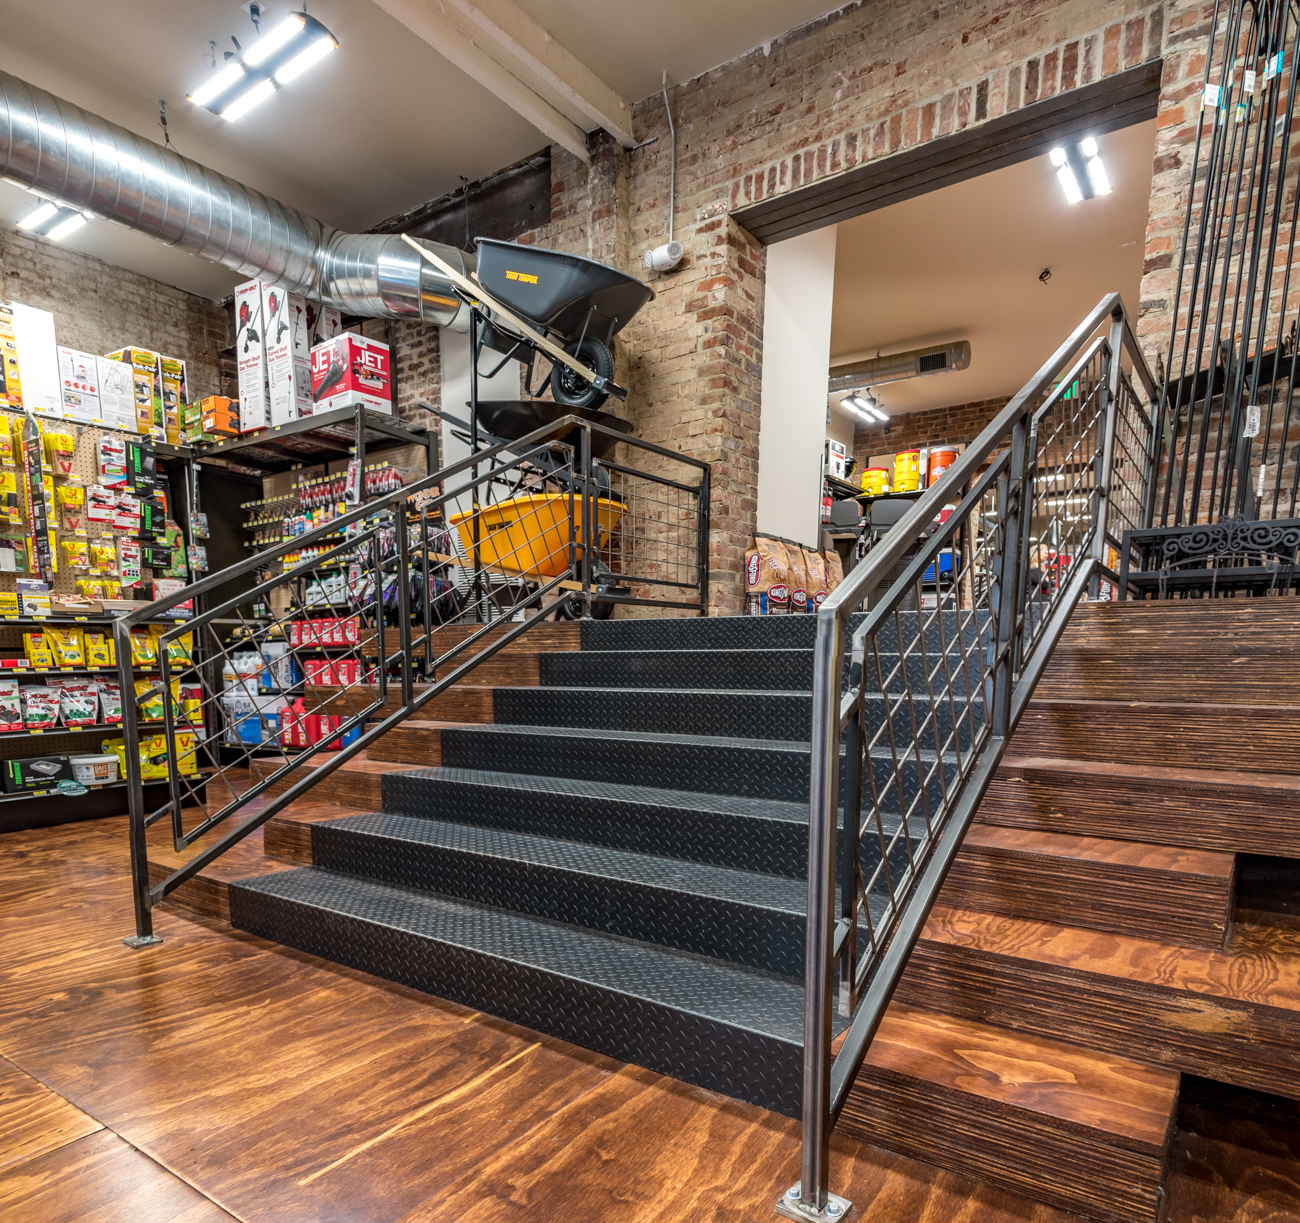 Woods Hardware is a seamless blend of a historic Cincinnati property with a one-stop hardware shop. Hub+Weber Architects PLC redesigned the building while keeping many of its original features intact. The store offers a variety of products from home improvement necessities to everyday items. ADDRESS: 125 E. Ninth Street, Cincinnati, OH 45202 / Image courtesy of Hub+Weber Architects PLC (via Phil Armstrong) // Published: 2.10.17